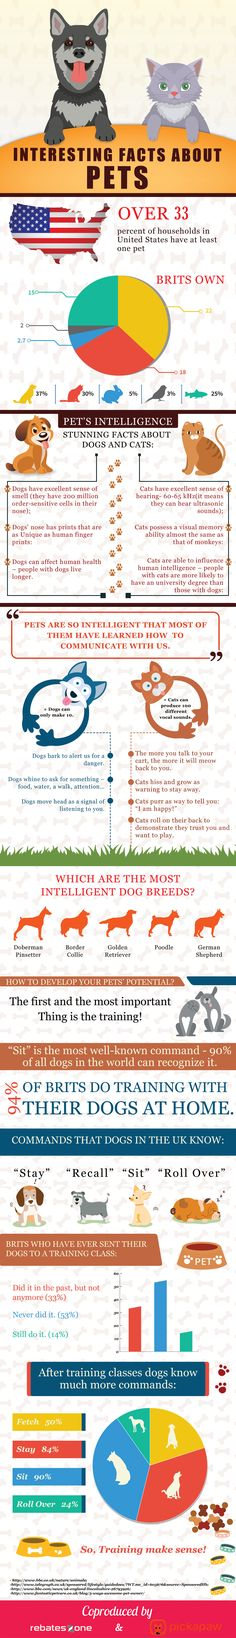 Interesting Facts About Pets